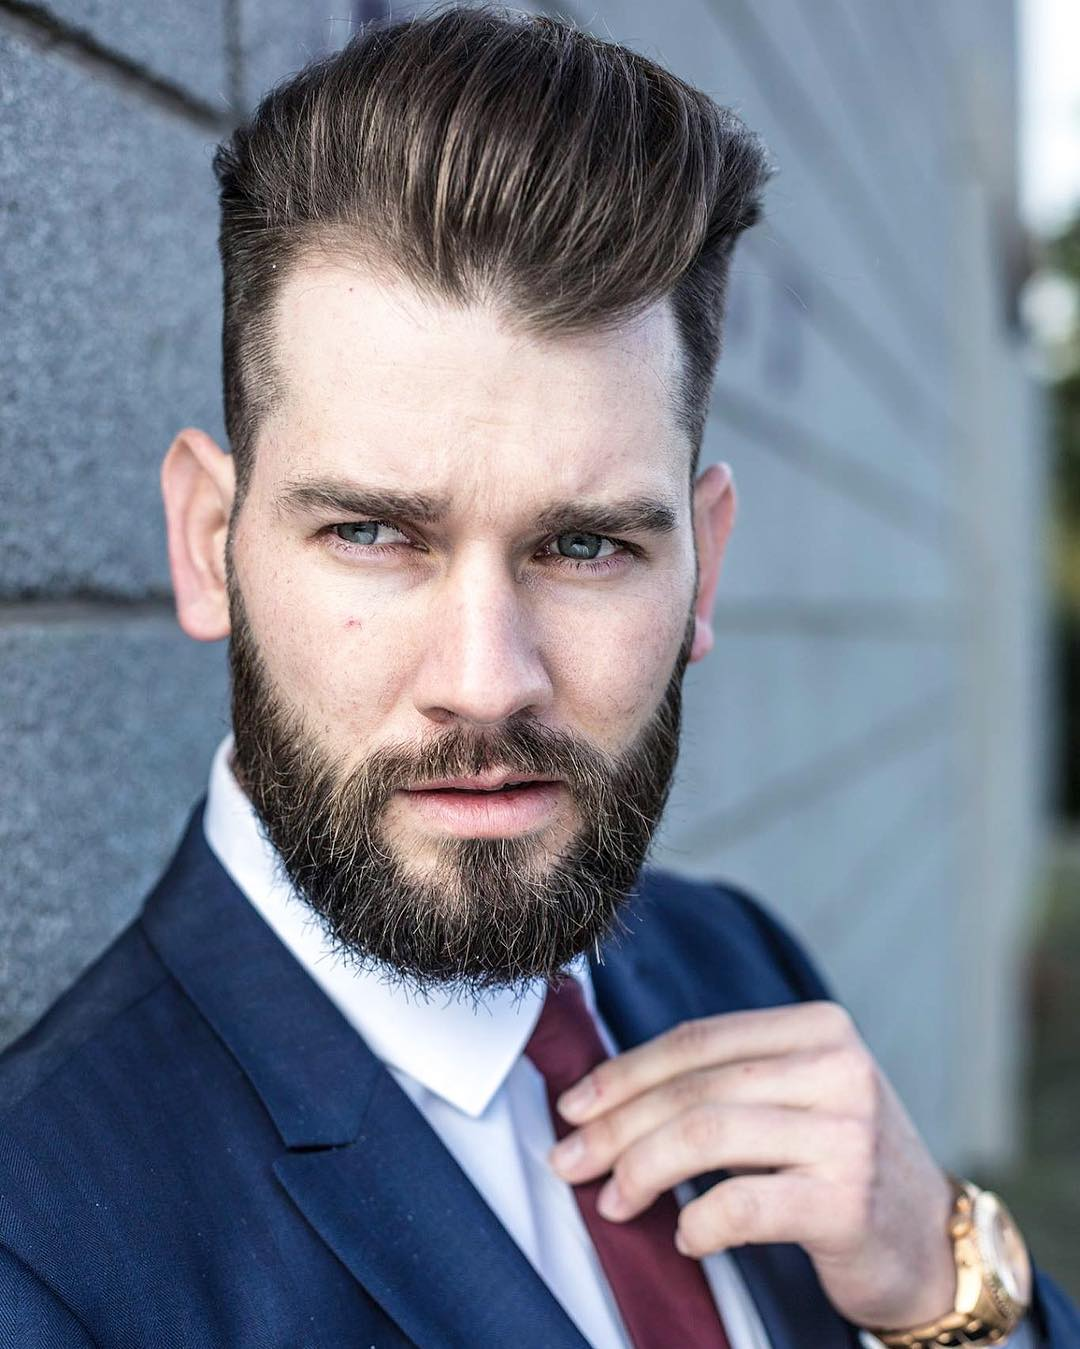 hair style of mens top 19 business hairstyles for 5775